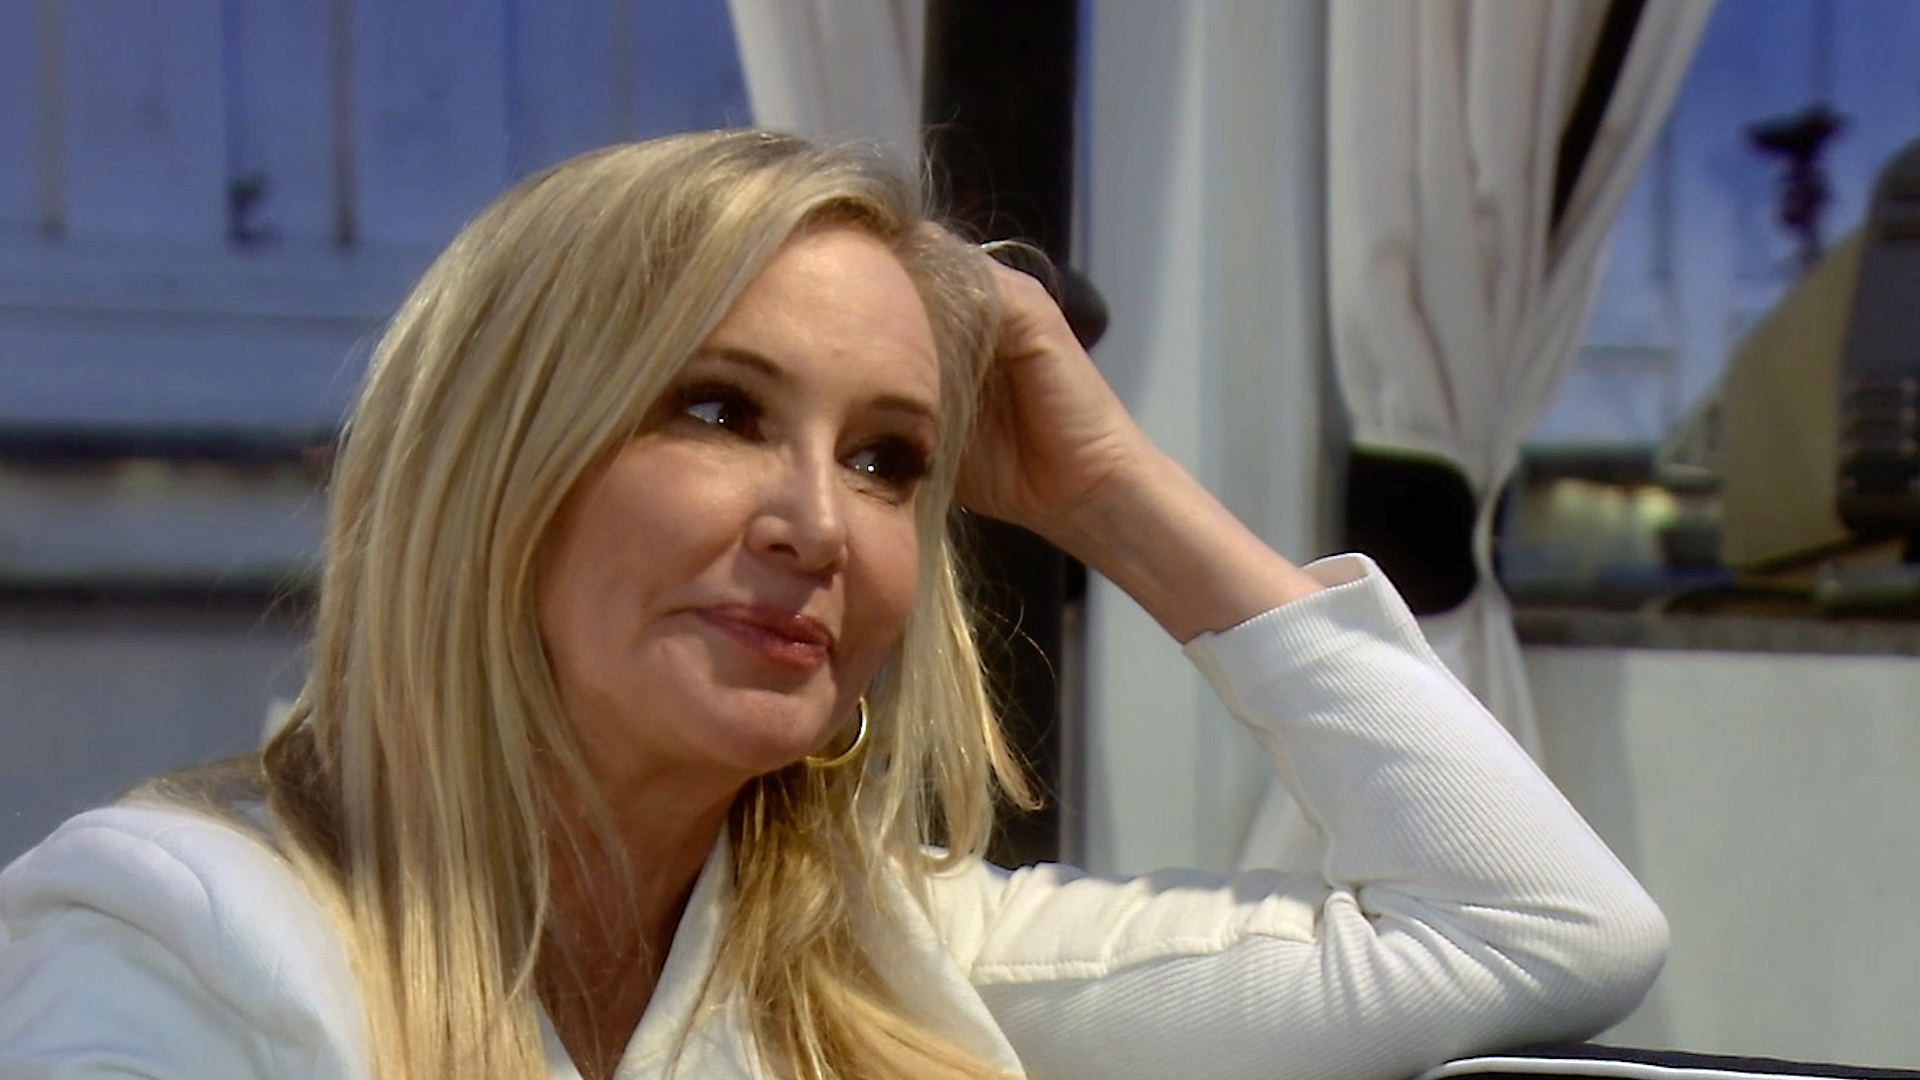 Shannon Beador Isn't Sure She Can Move Forward With Braunwyn Windham-Burke